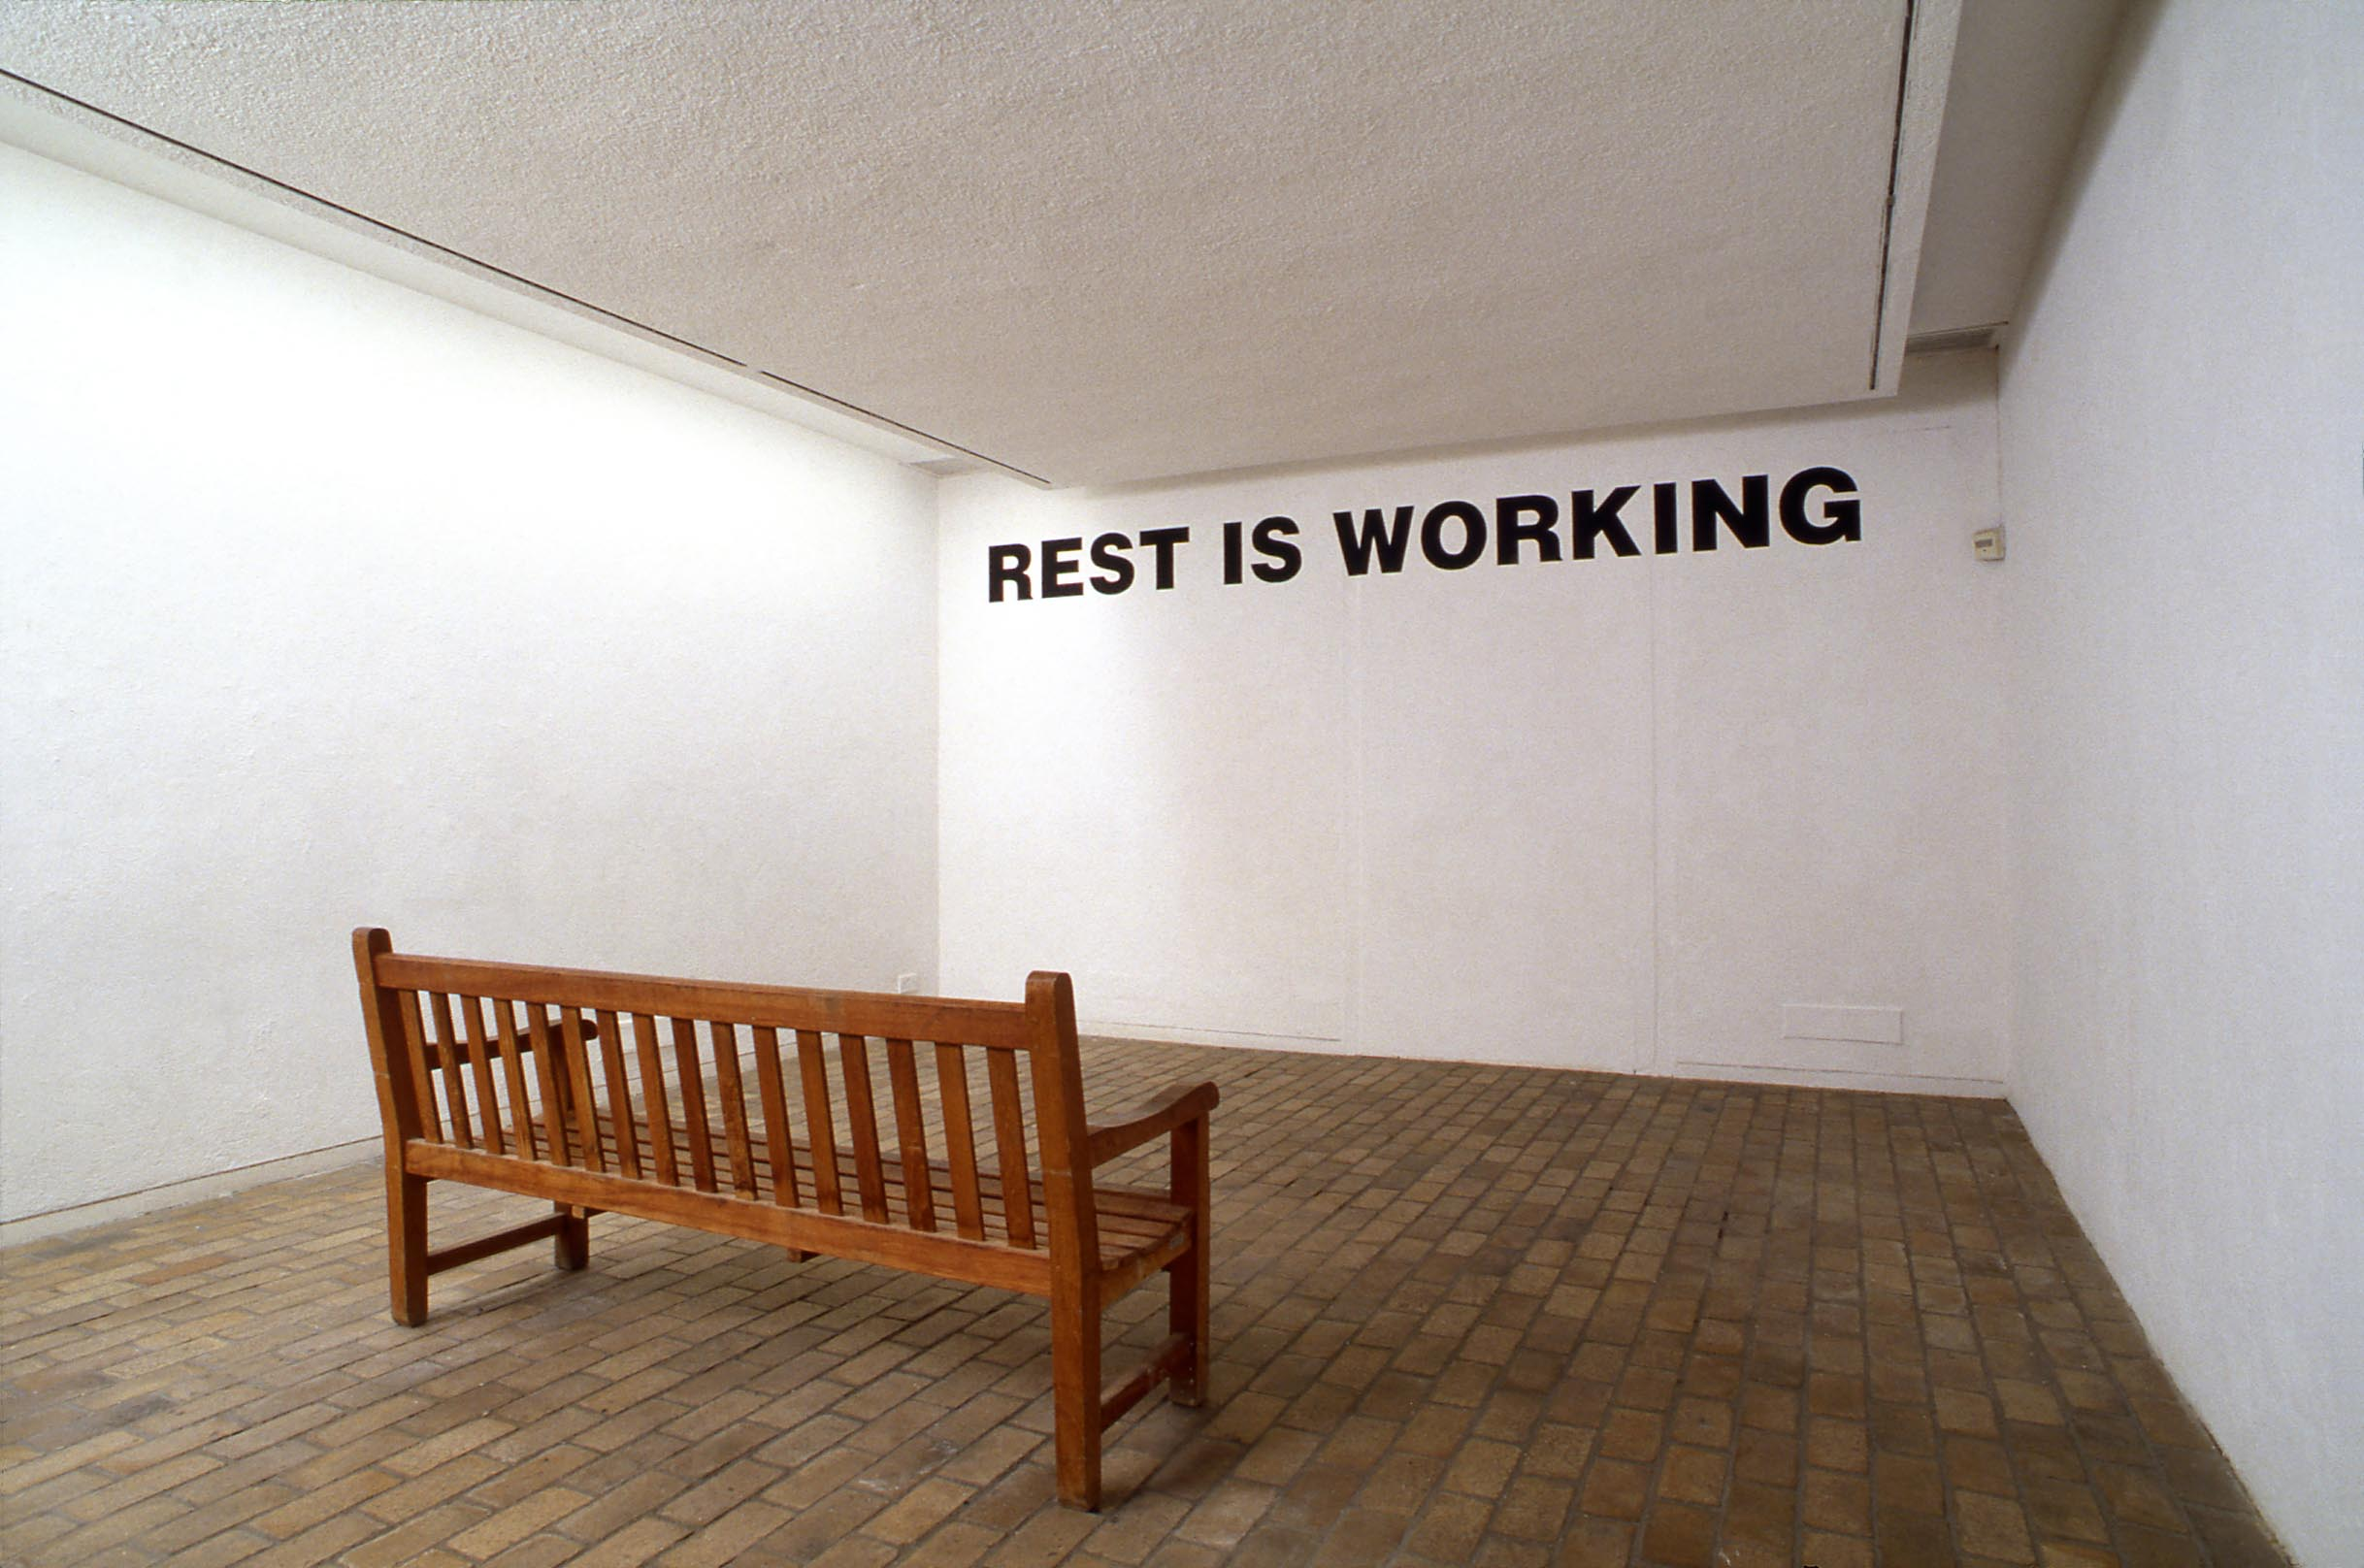 REST IS WORKING Art in Ruins 1991 Park bench, text on wall EXCAVATING THE PRESENT Kettle's Yard, Cambridge 1991